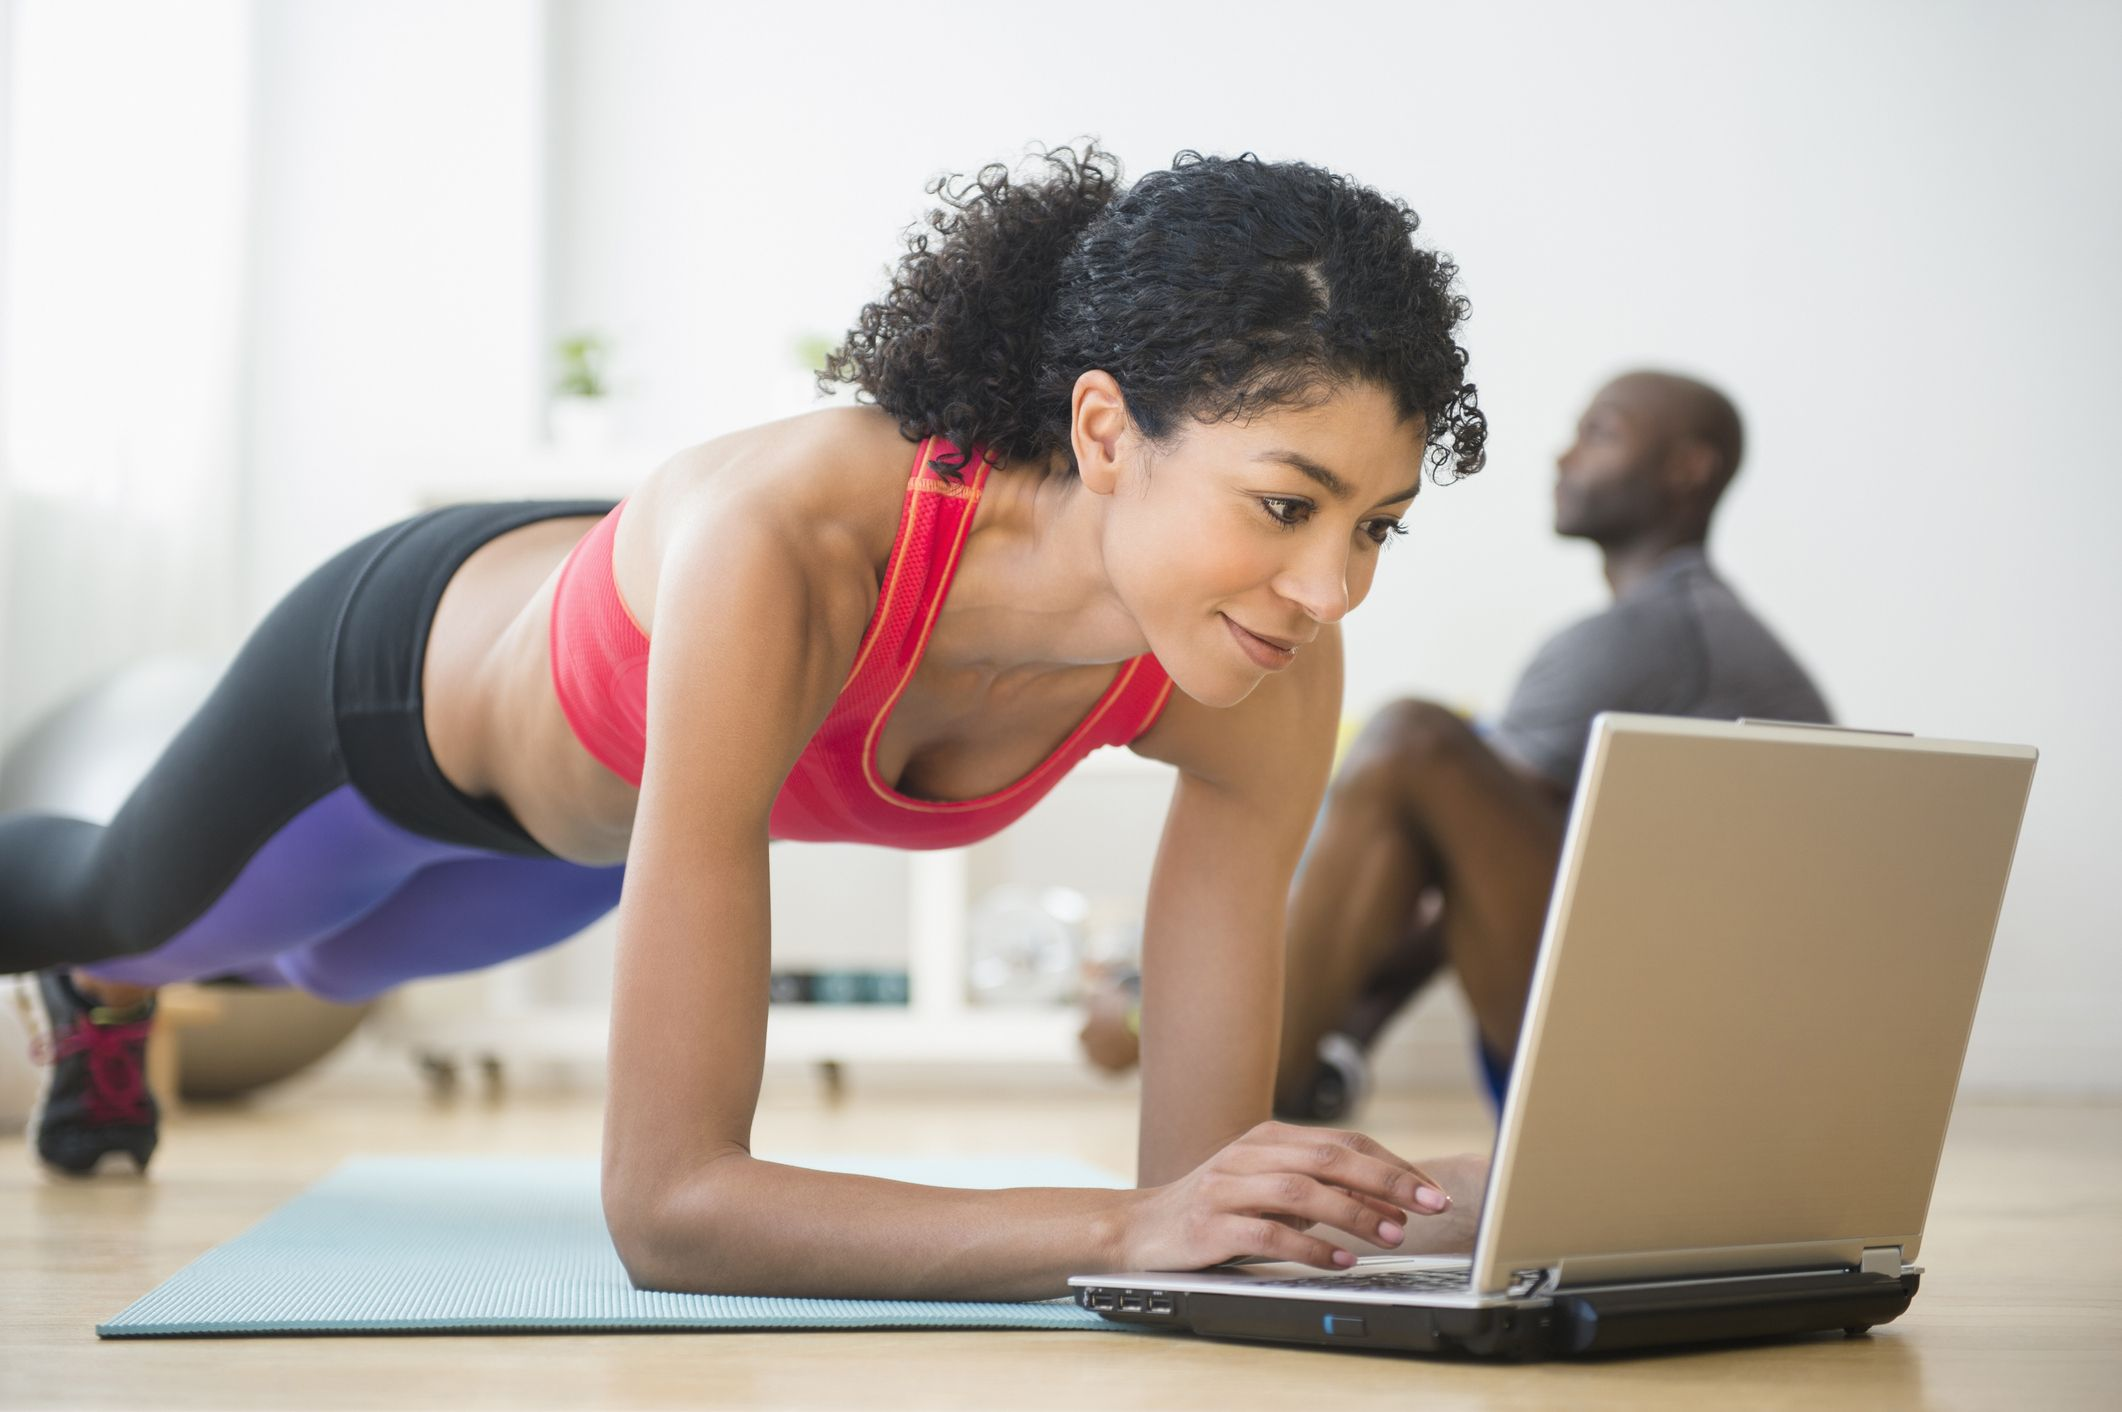 21 Best Youtube Workout Channels Youtube Workout Classes For Women